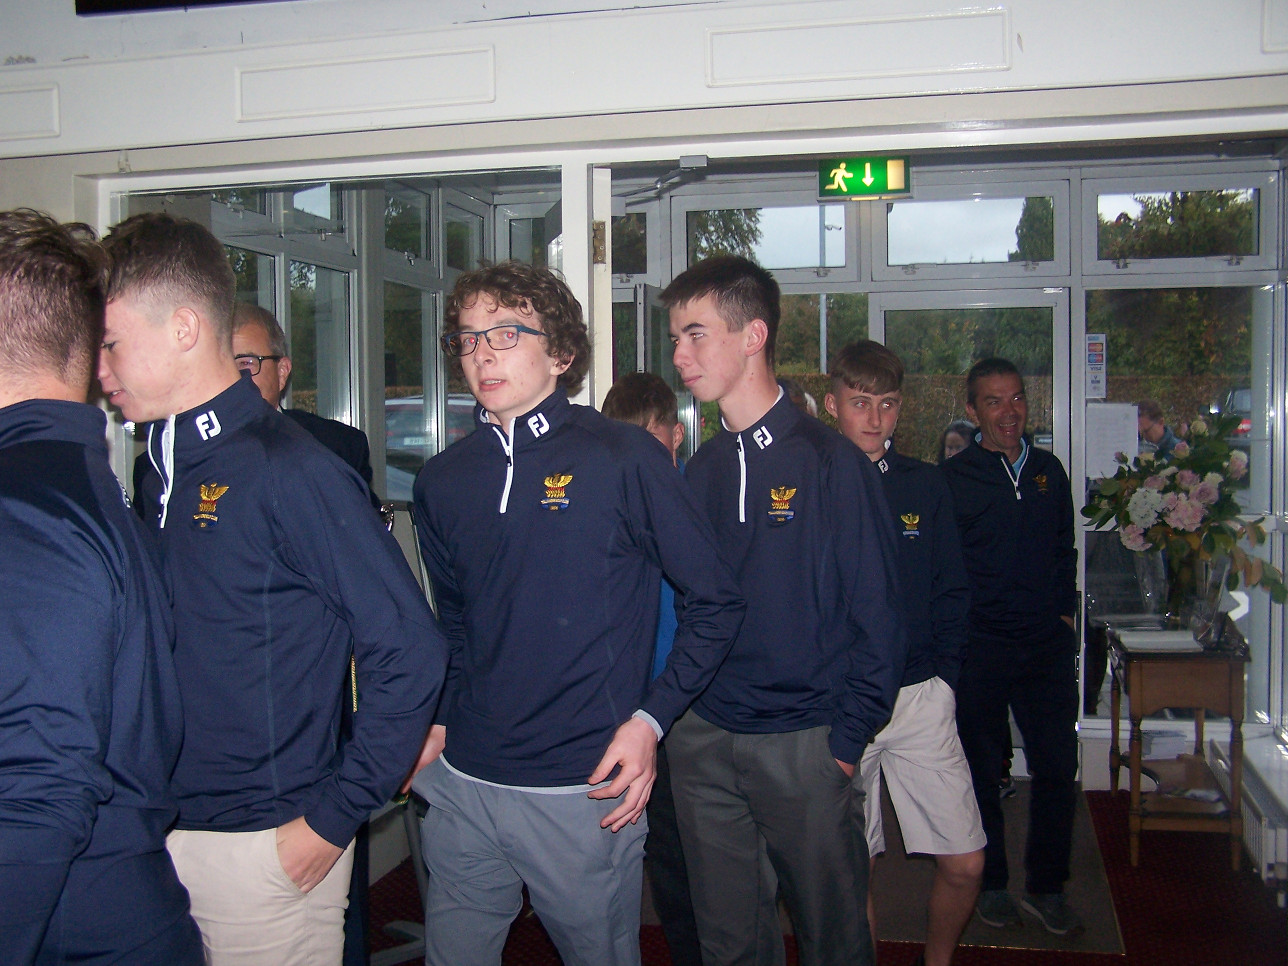 Boys arriving home